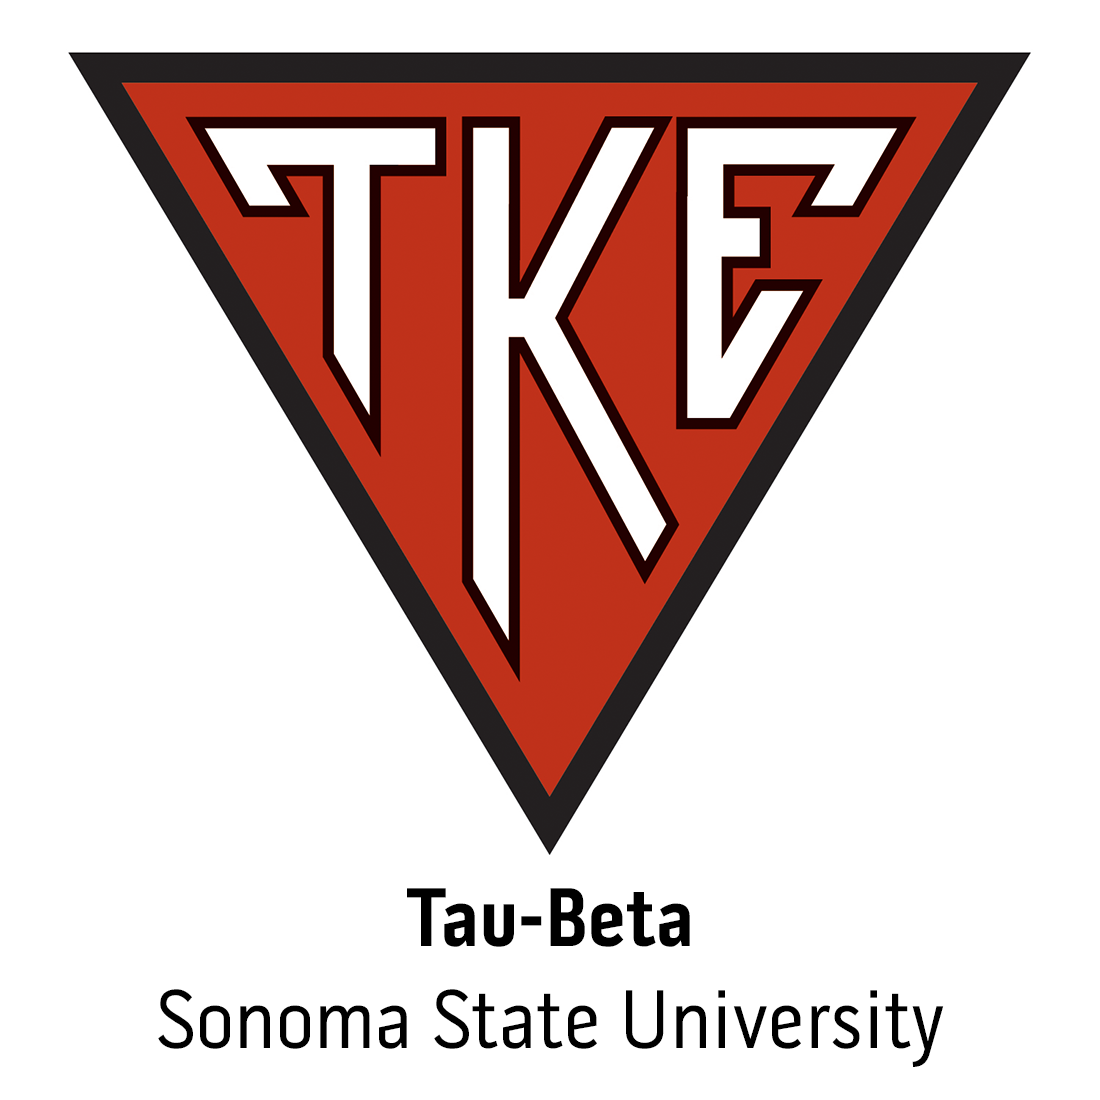 Tau-Beta Chapter at Sonoma State University